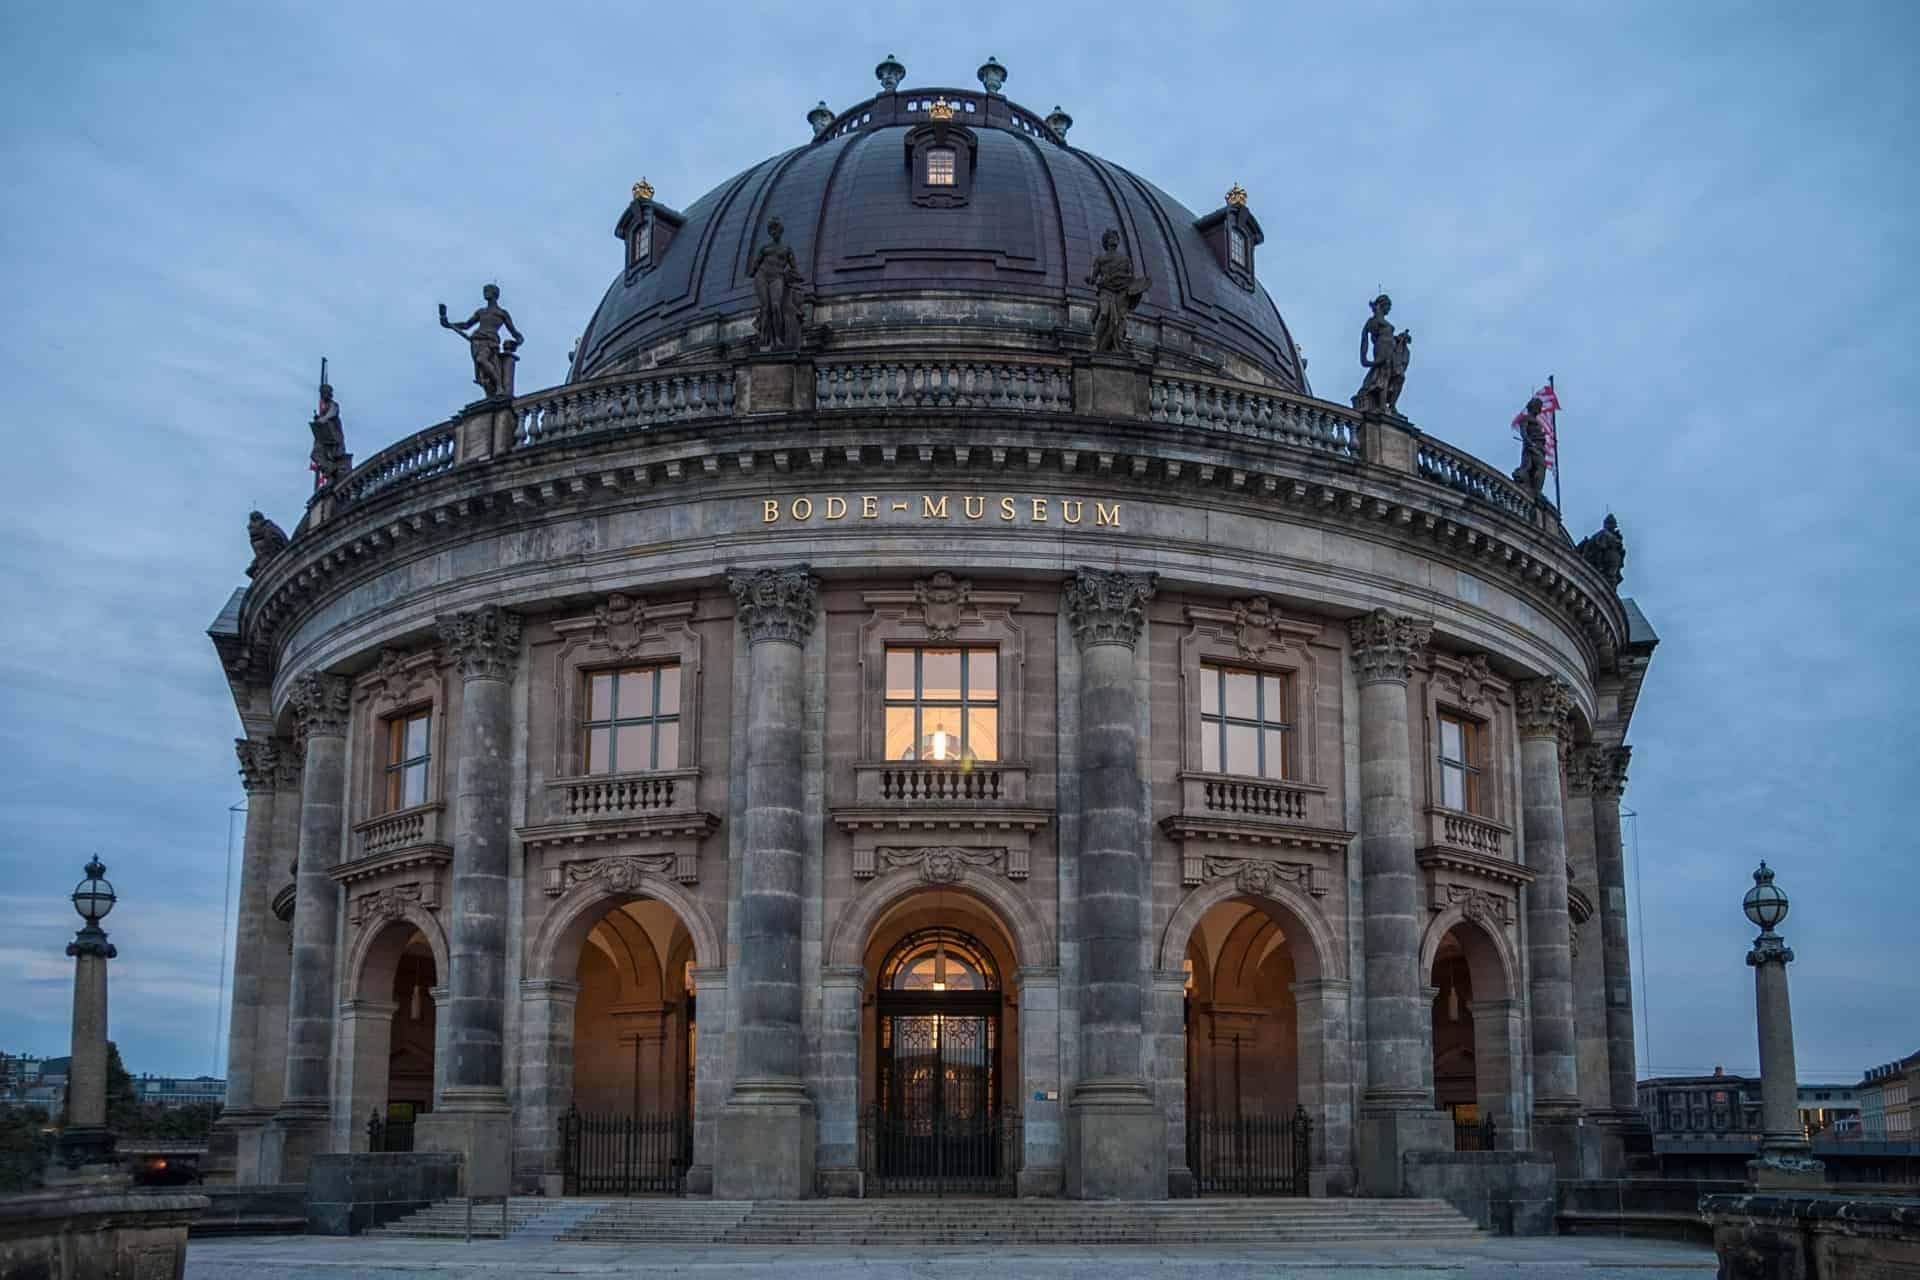 Bode Museum on Berlin's Museum Island